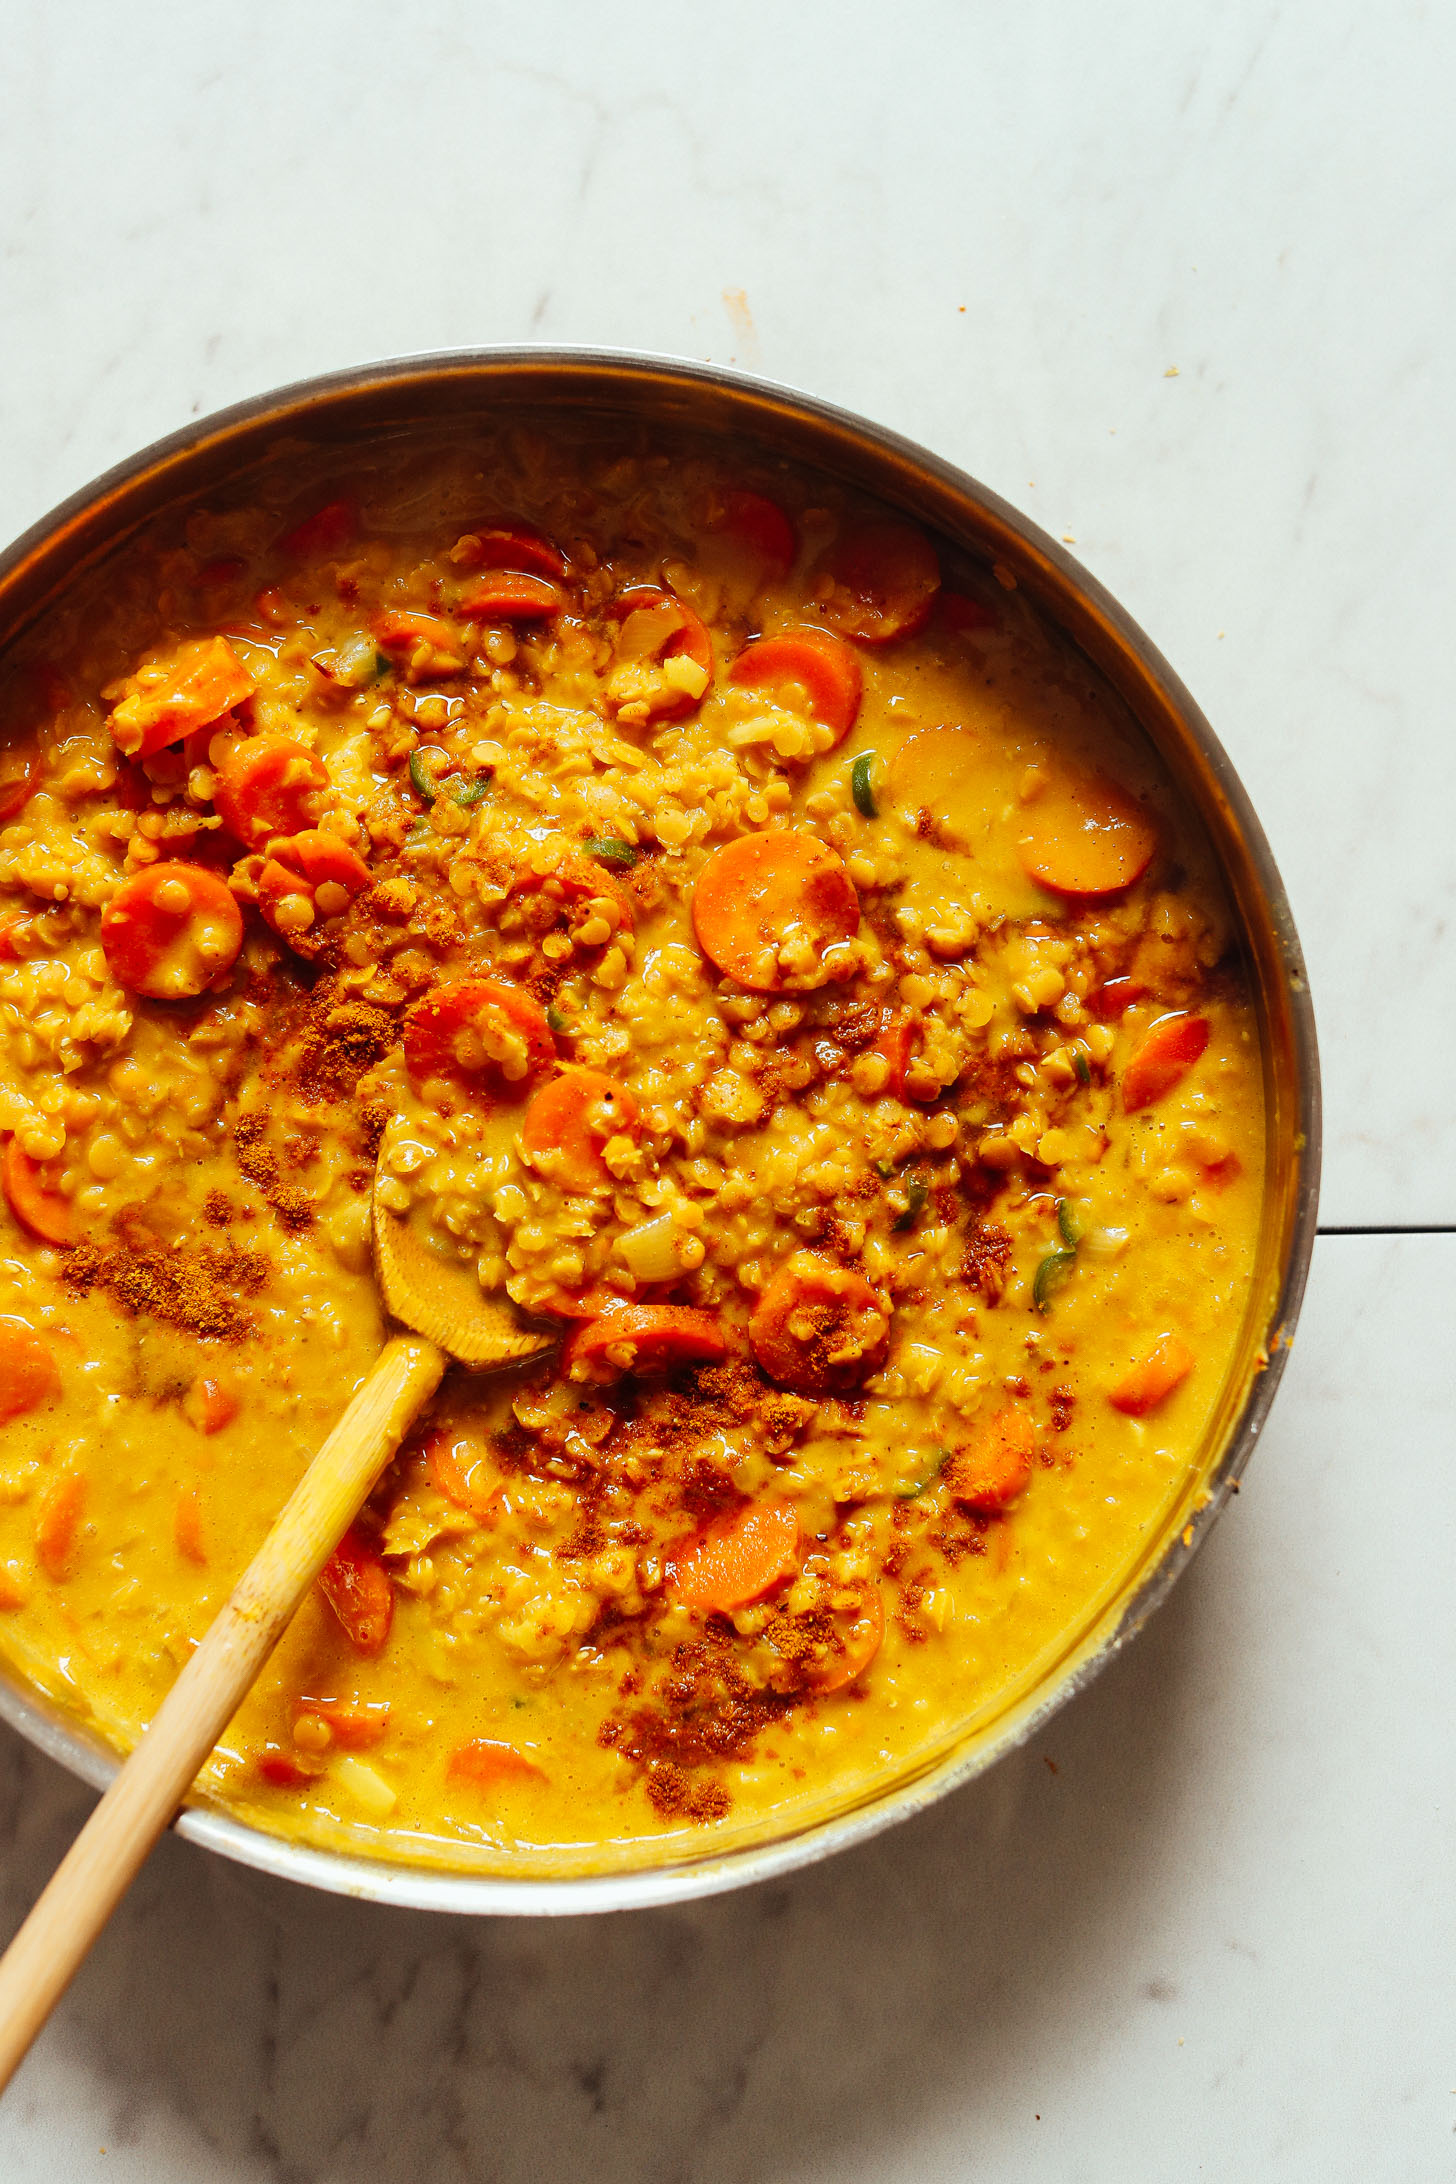 An overhead shot of golden curried lentil soup with carrots, coconut milk, and curry powder